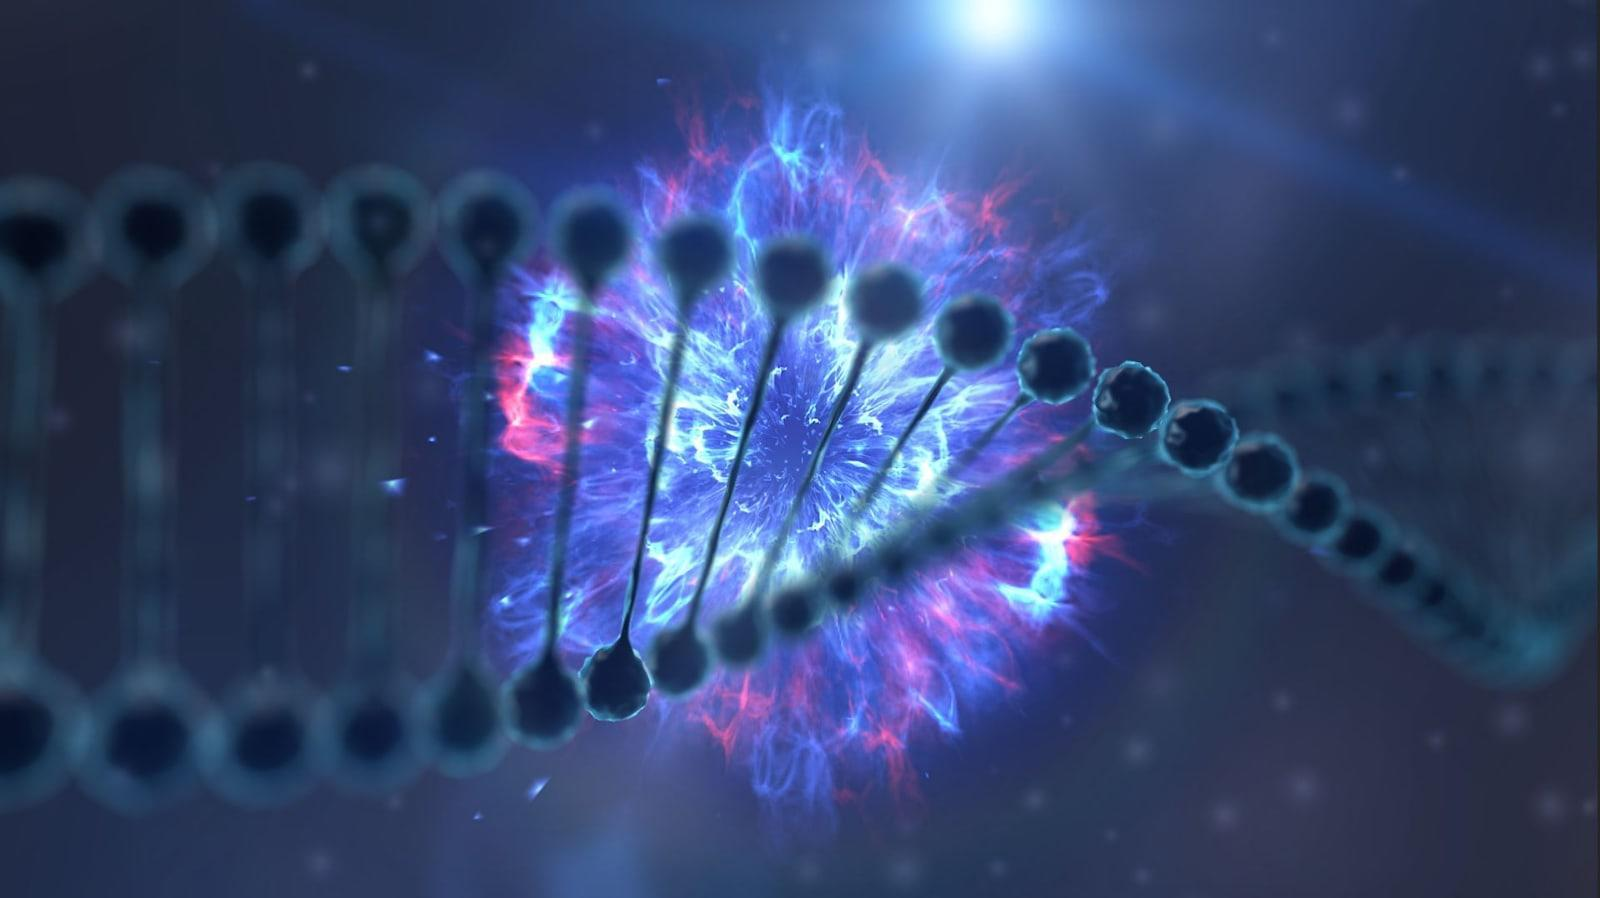 Hard drives of the future could be made of DNA   Engadget